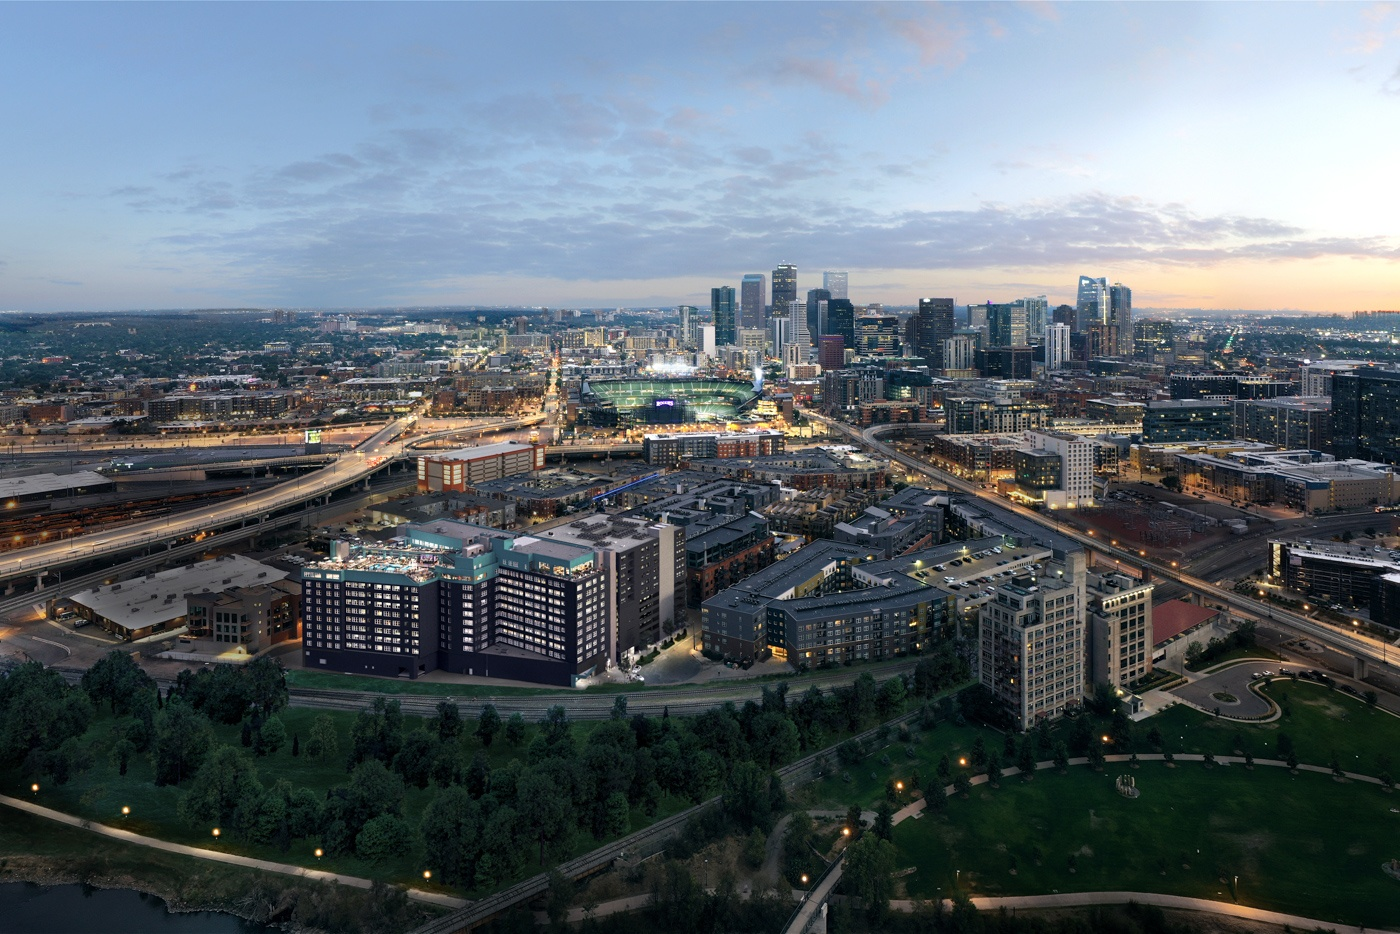 Aerial view of X Denver with Coors Field and downtown Denver in the background